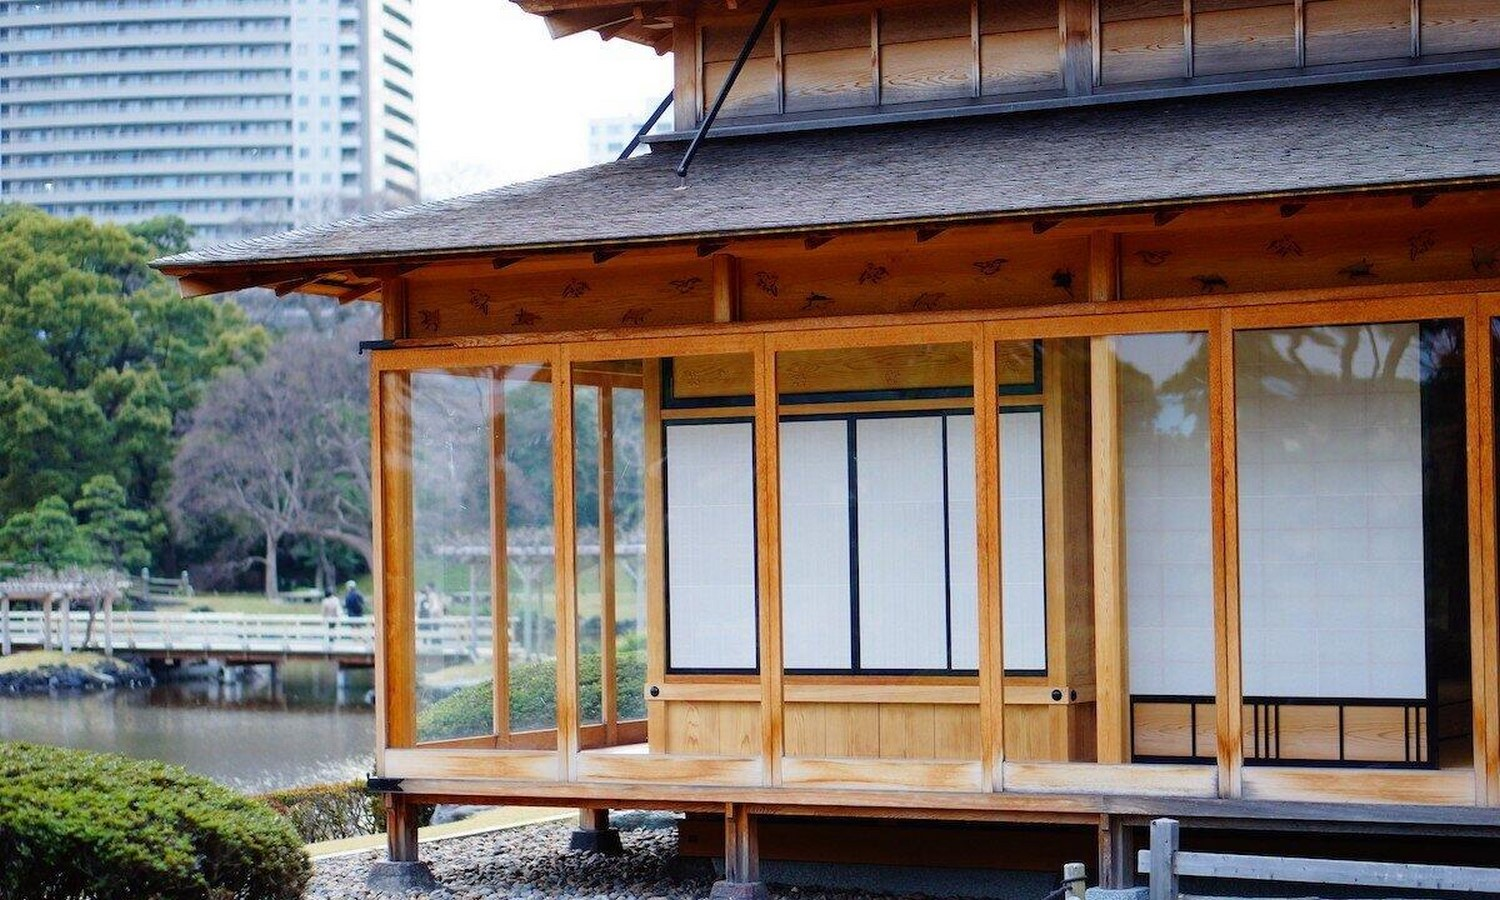 Architecture of Japan: Is it really Sustainable? - Sheet9